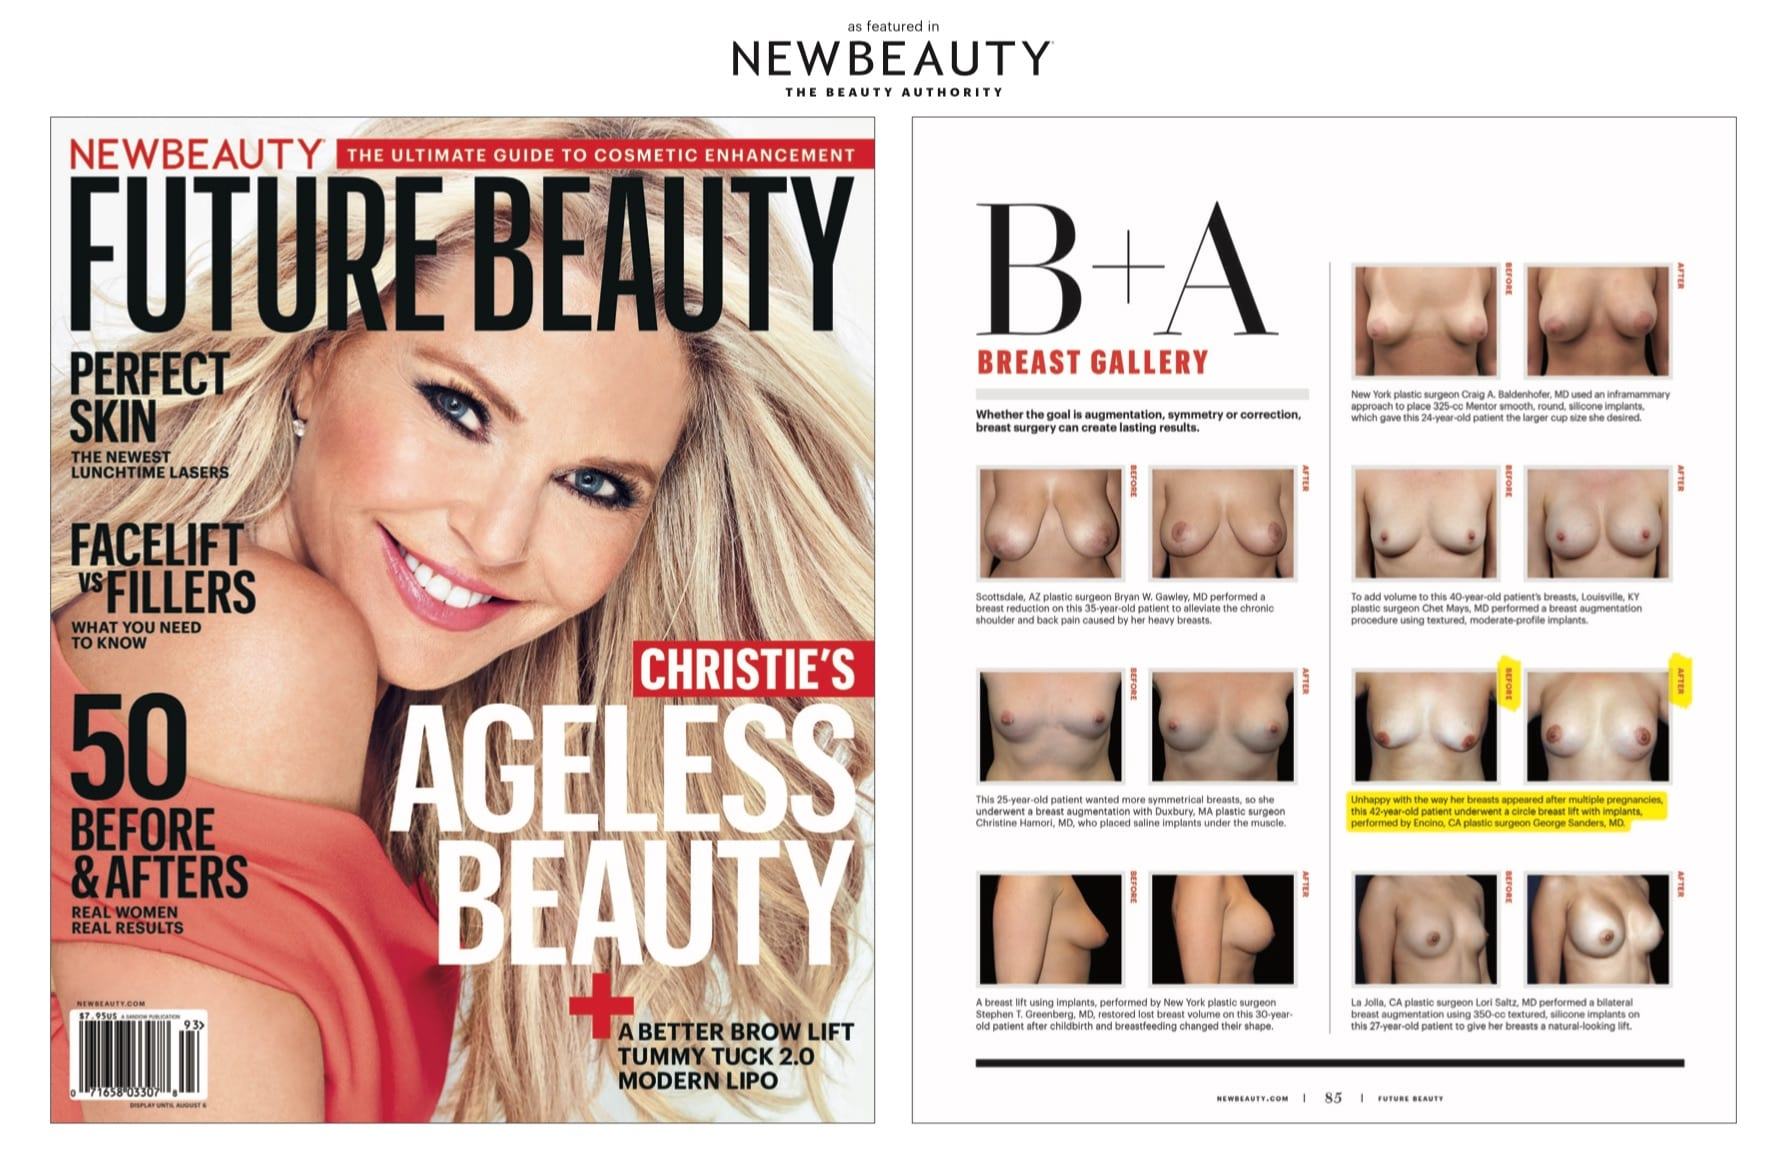 Dr. Sanders' Breast Lift Before and After Featured in New Beauty Magazine